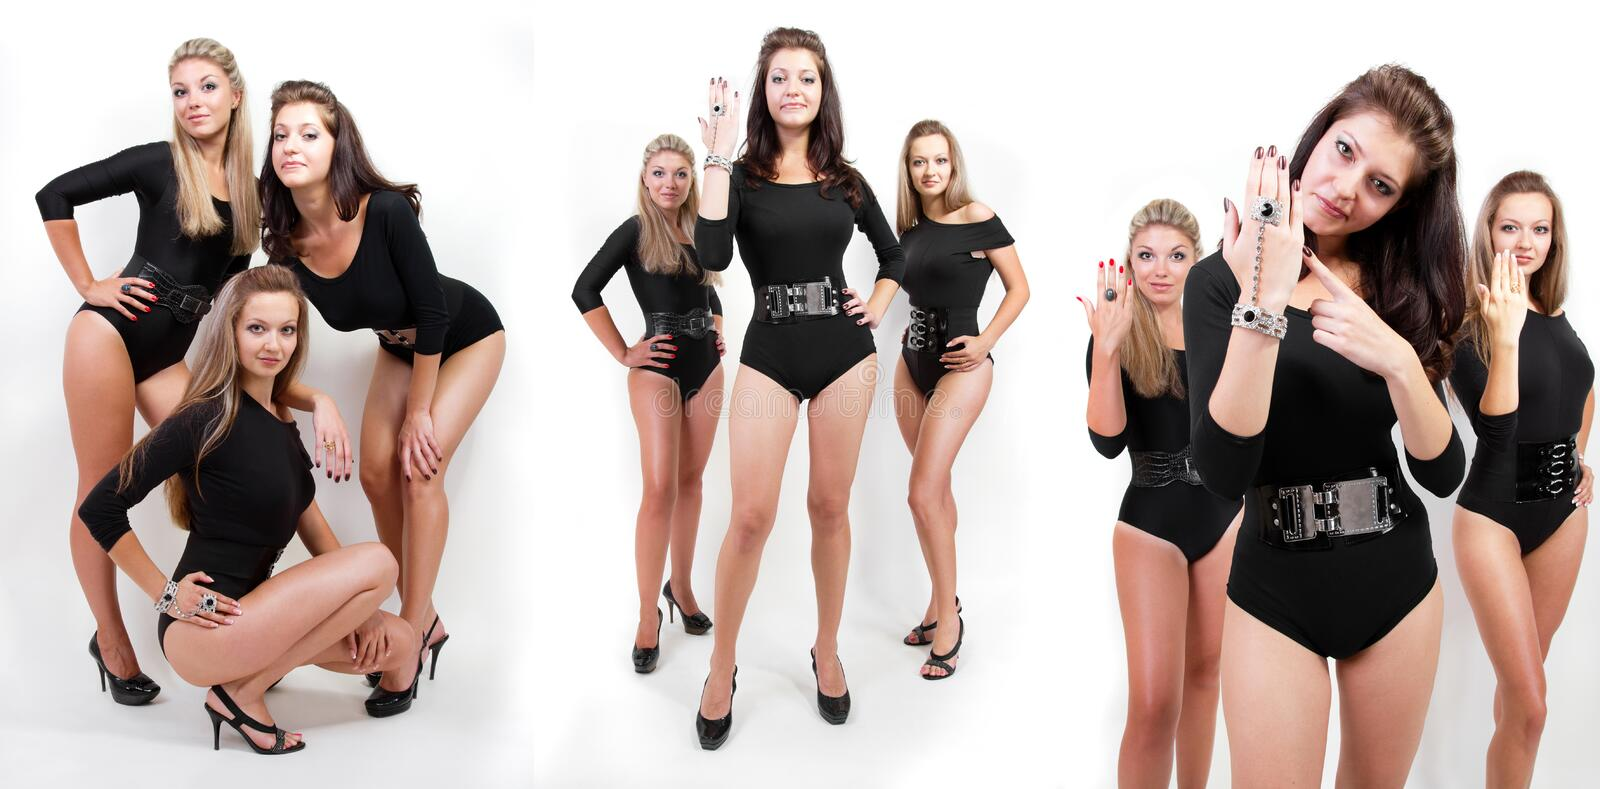 Collage of group of hot young women in bodysuits stock images